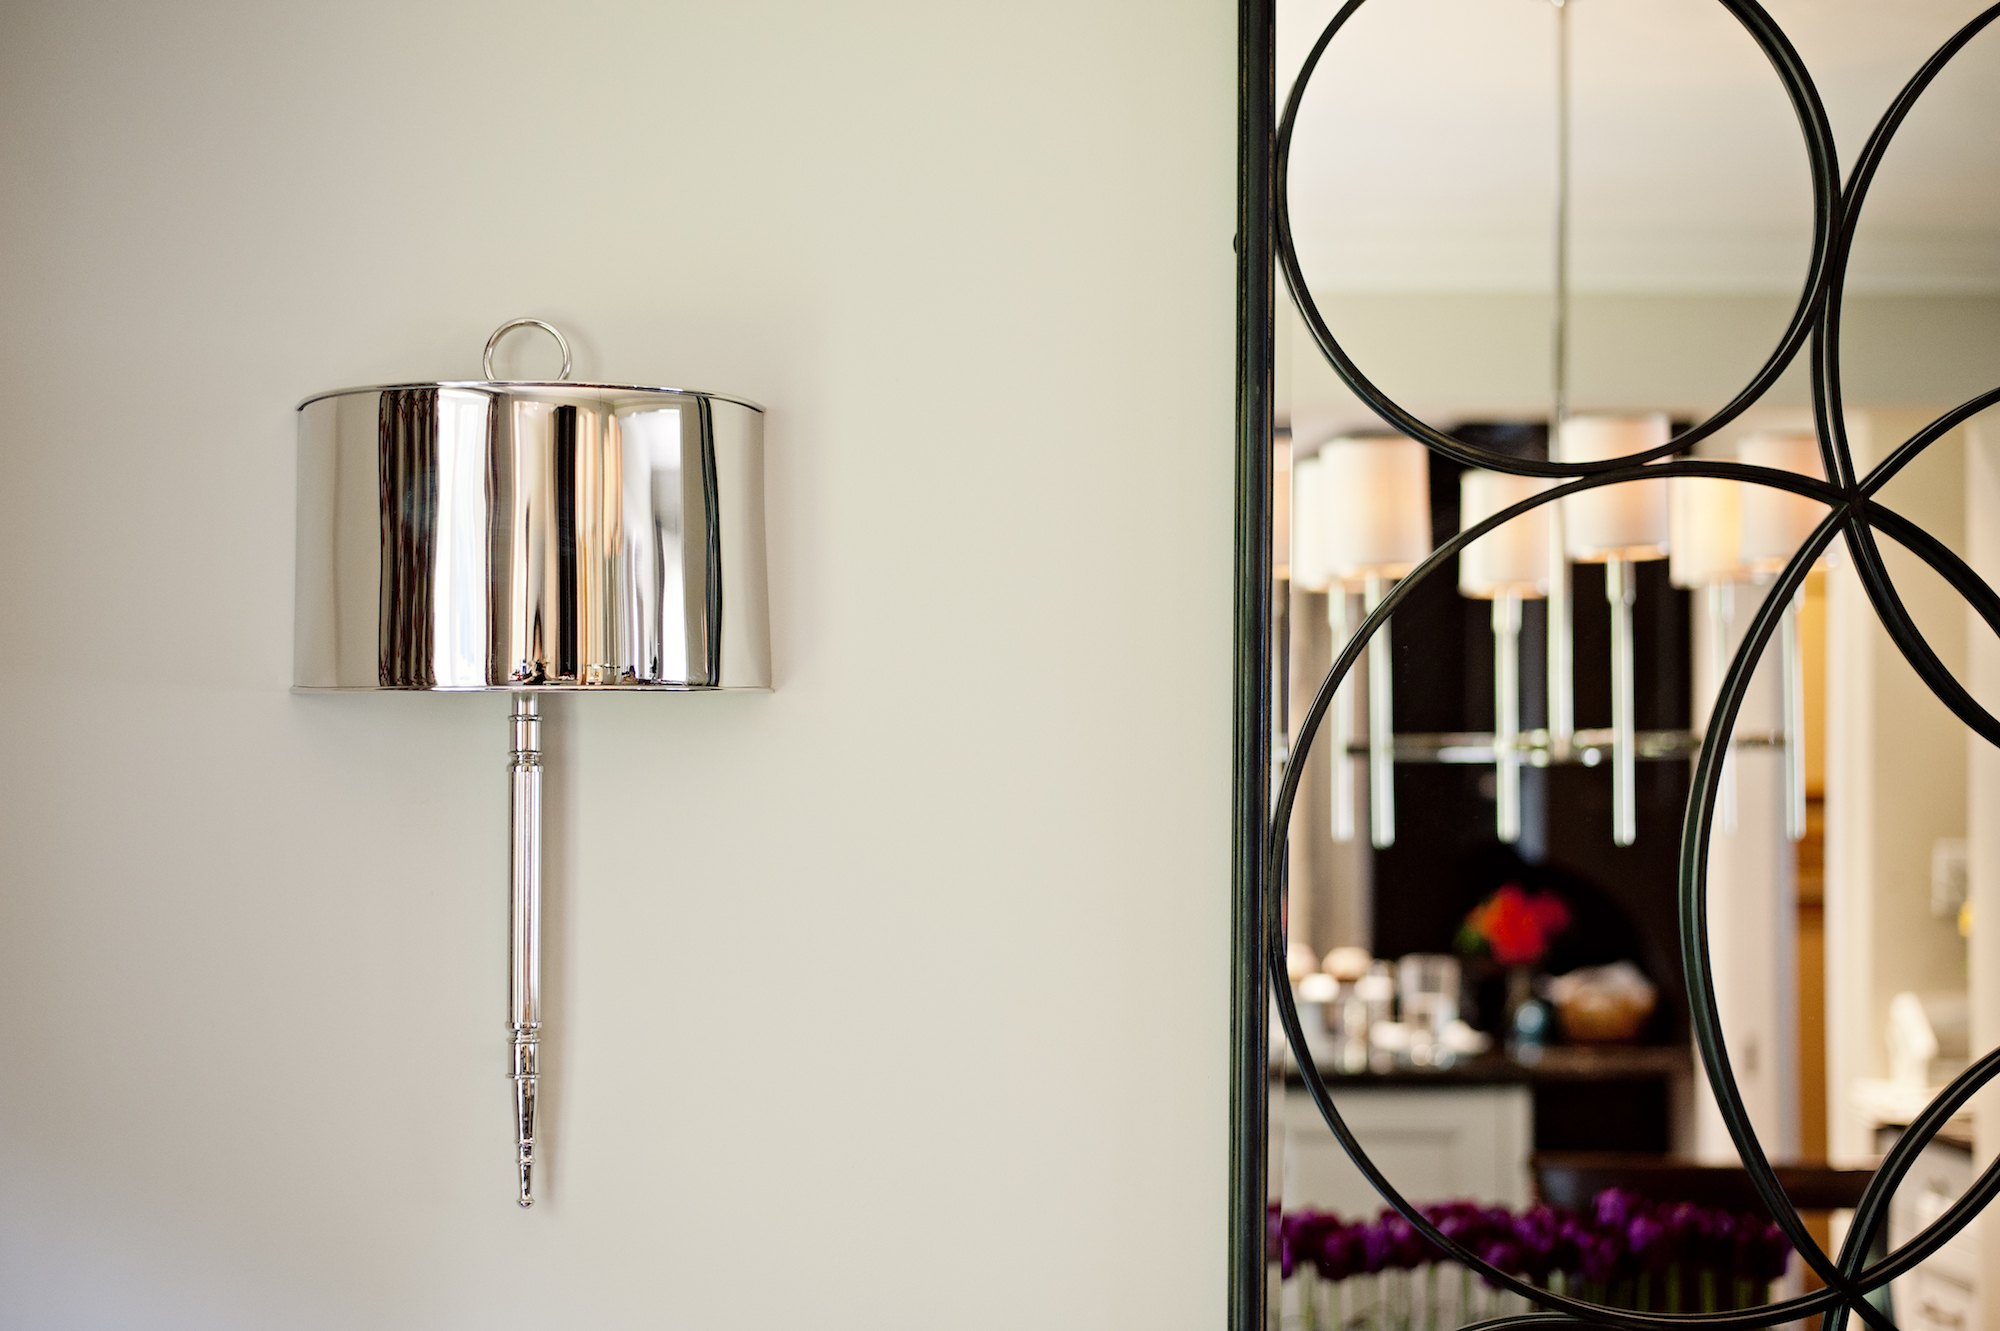 17 Pizzale Design Interior Decorating wall sconce chrome  .jpg